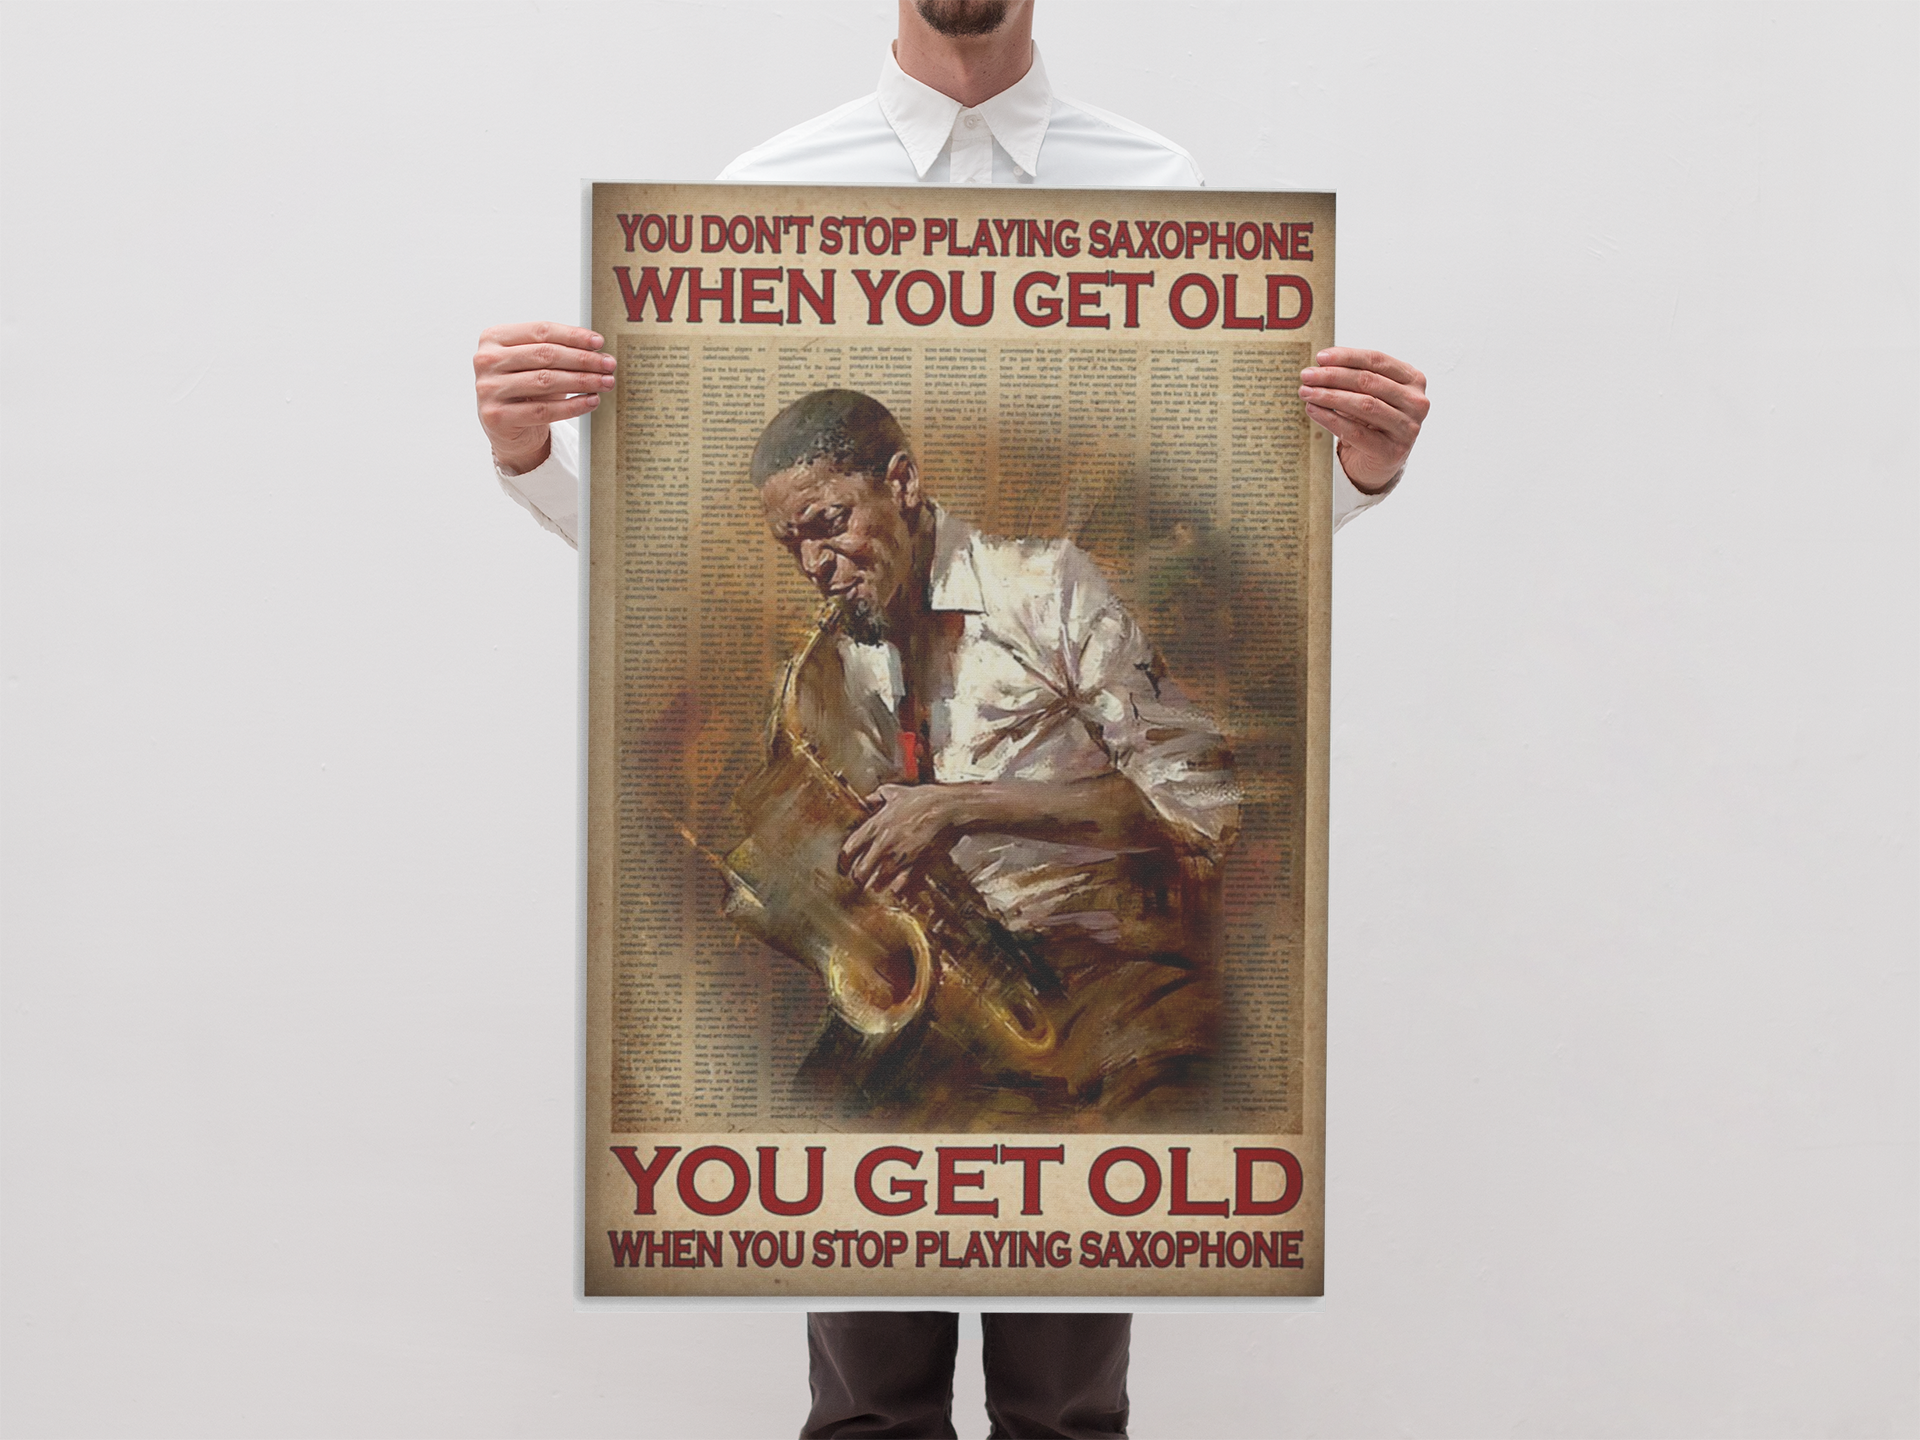 You don't stop playing saxophone when you get old poster 19